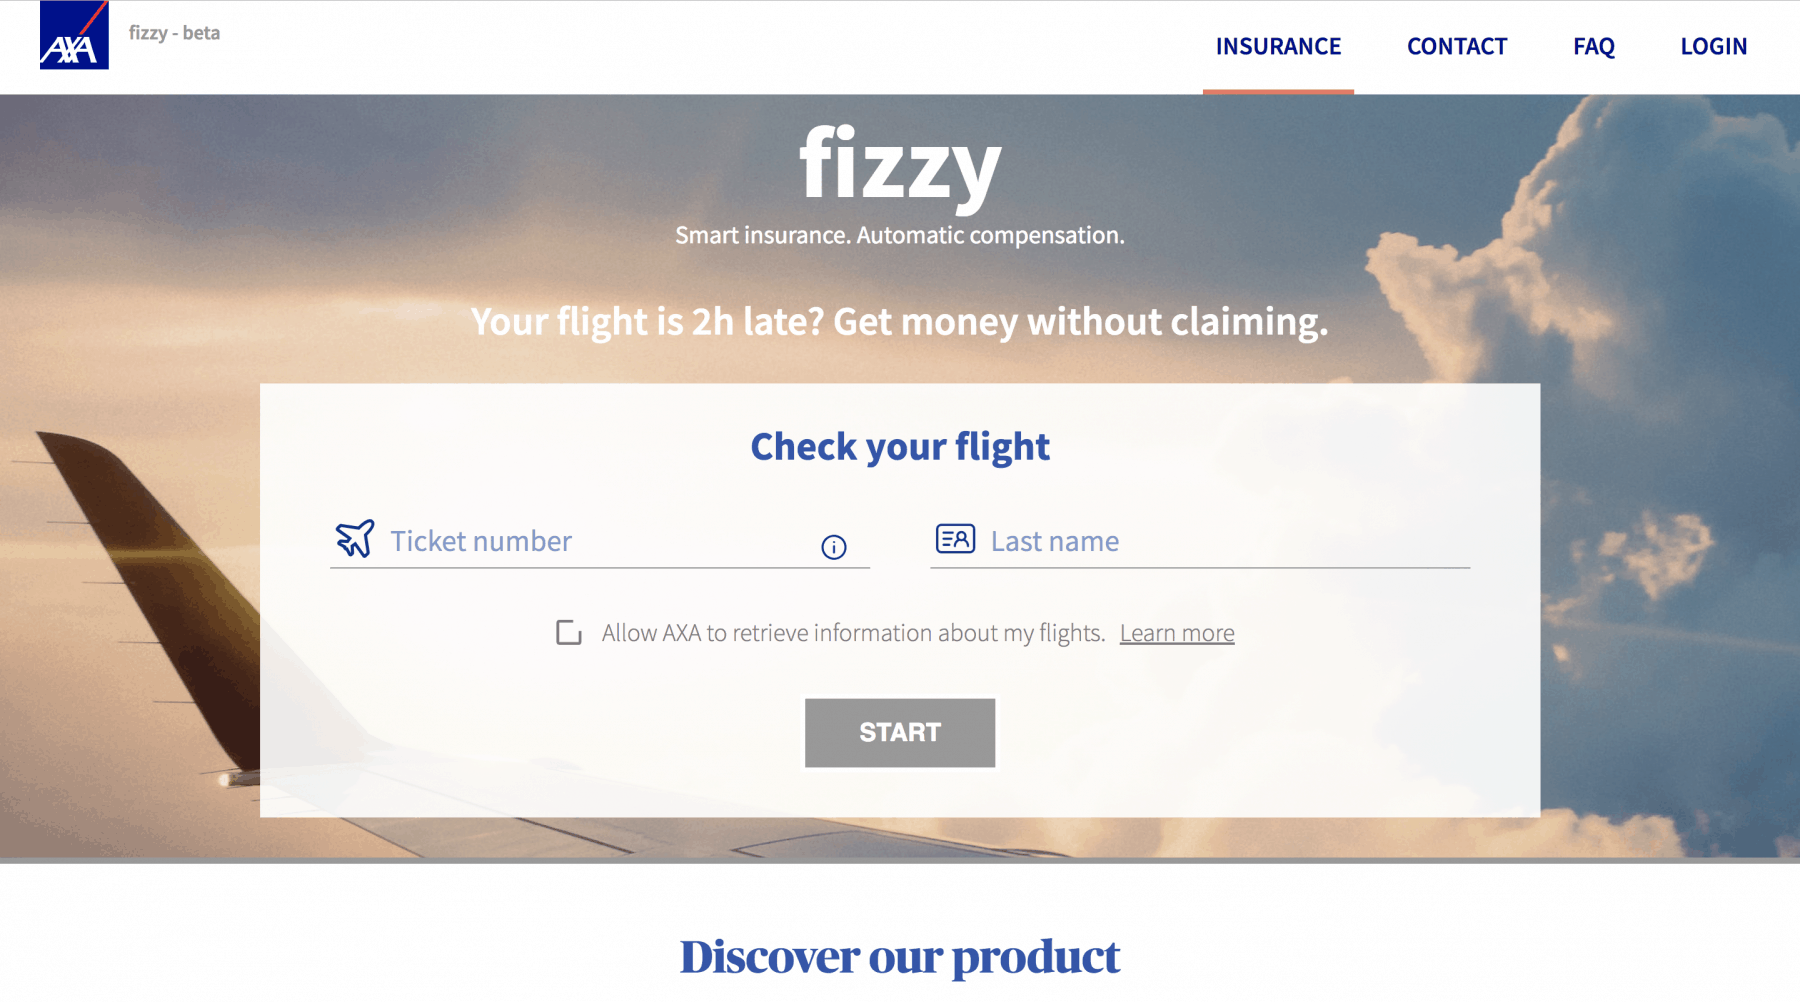 FIzzy smart contract blockchain use case implemenation example